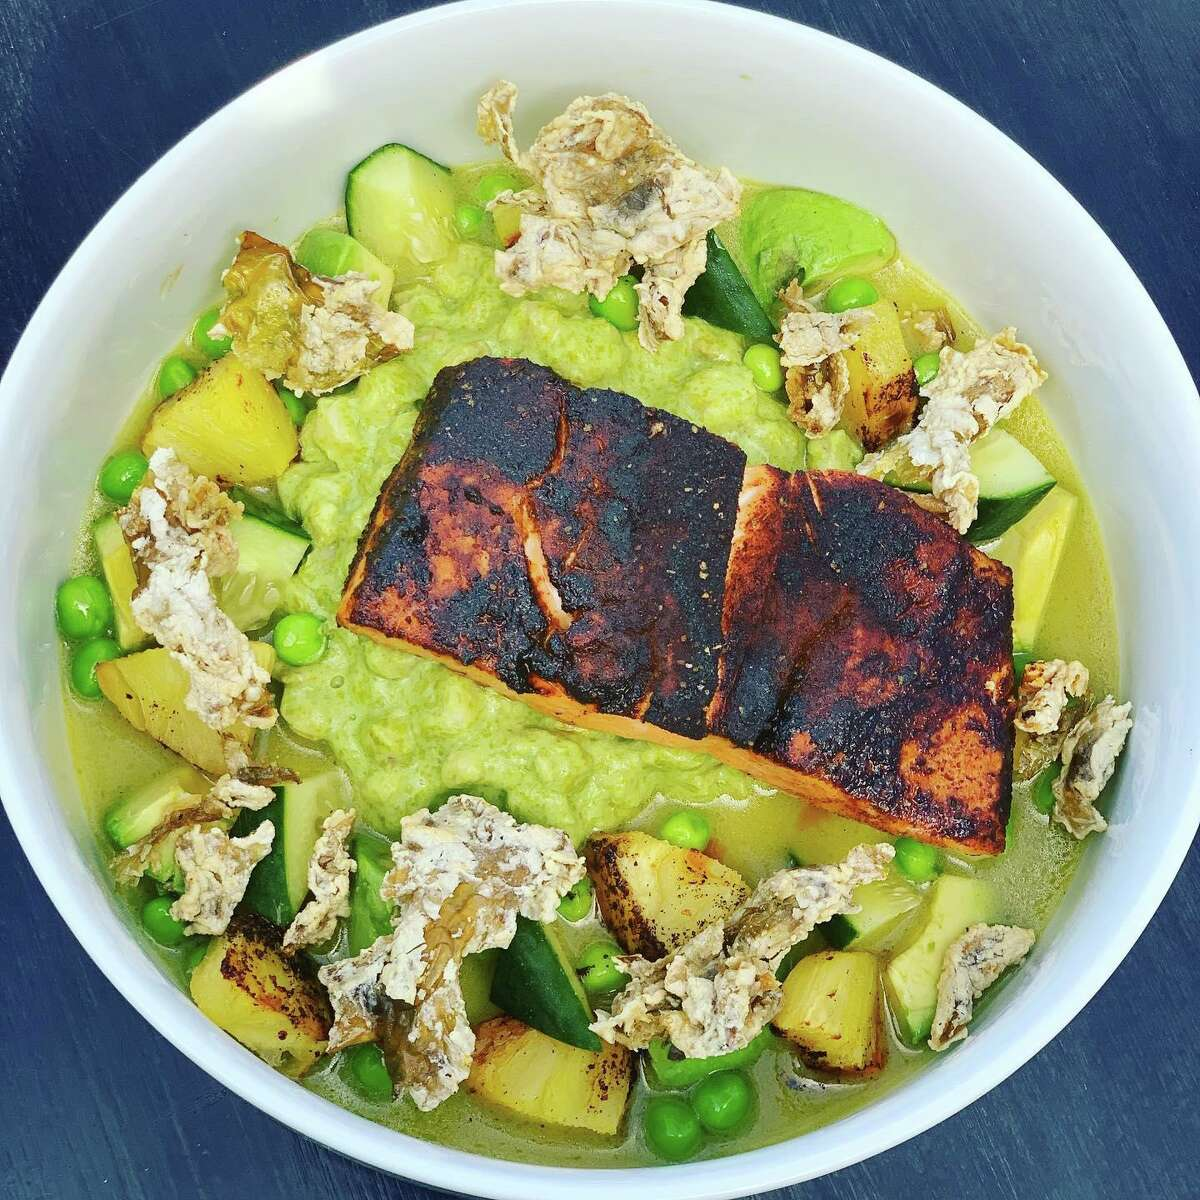 At The Essex in Centerbrook, chef Colt Taylor will offer an al pastor-style roasted Ora King salmon, served with heirloom corn hominy